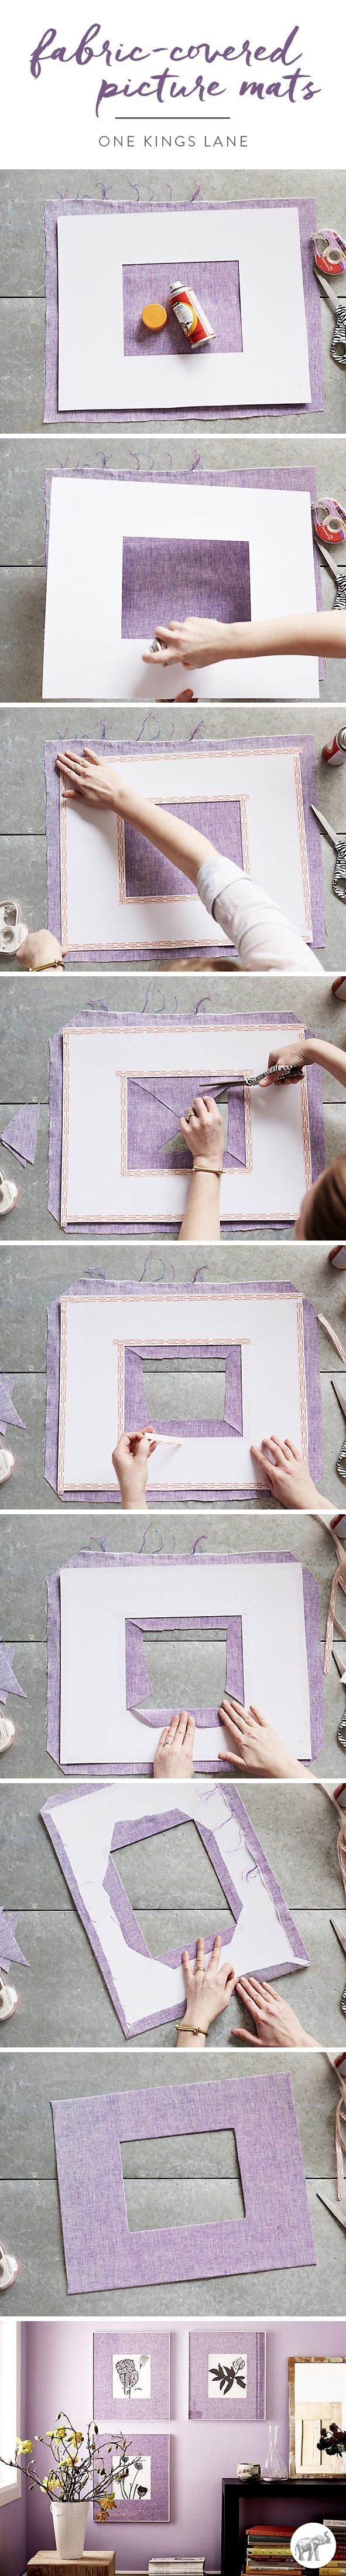 Artful Update: Fabric-Covered Picture Mats | DIY | Urban living ...